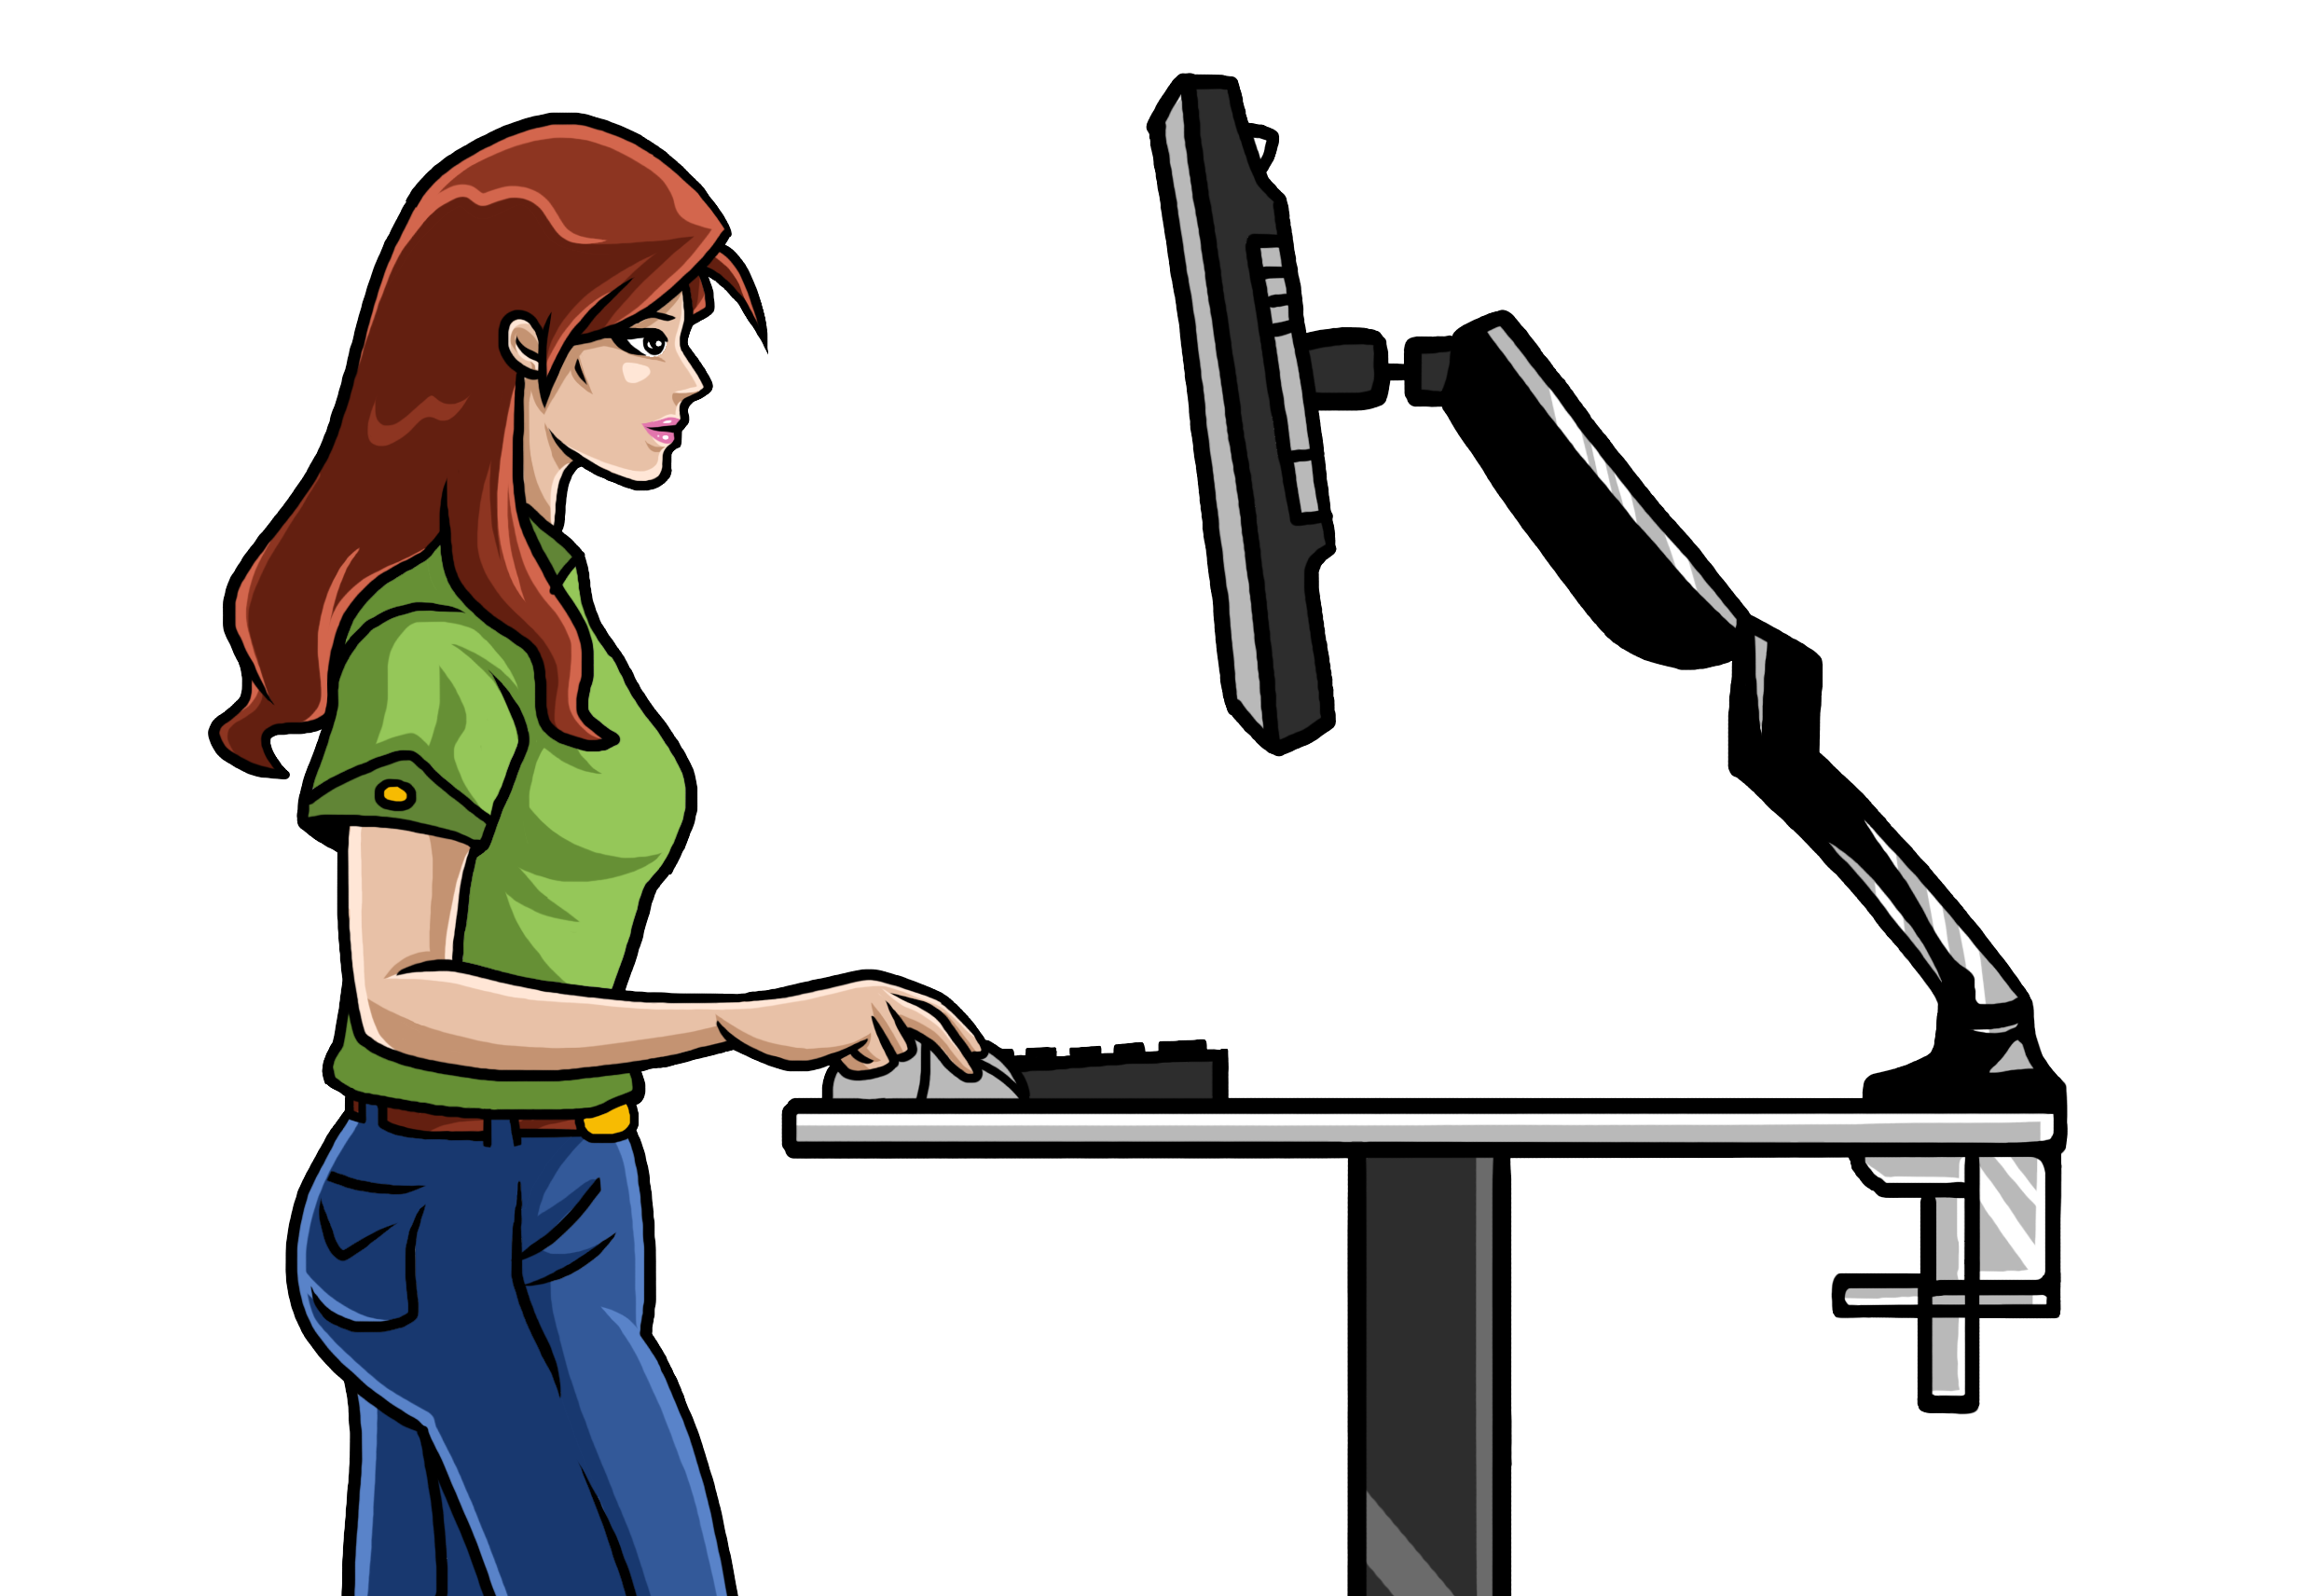 Important clipart desk. Set your standing to